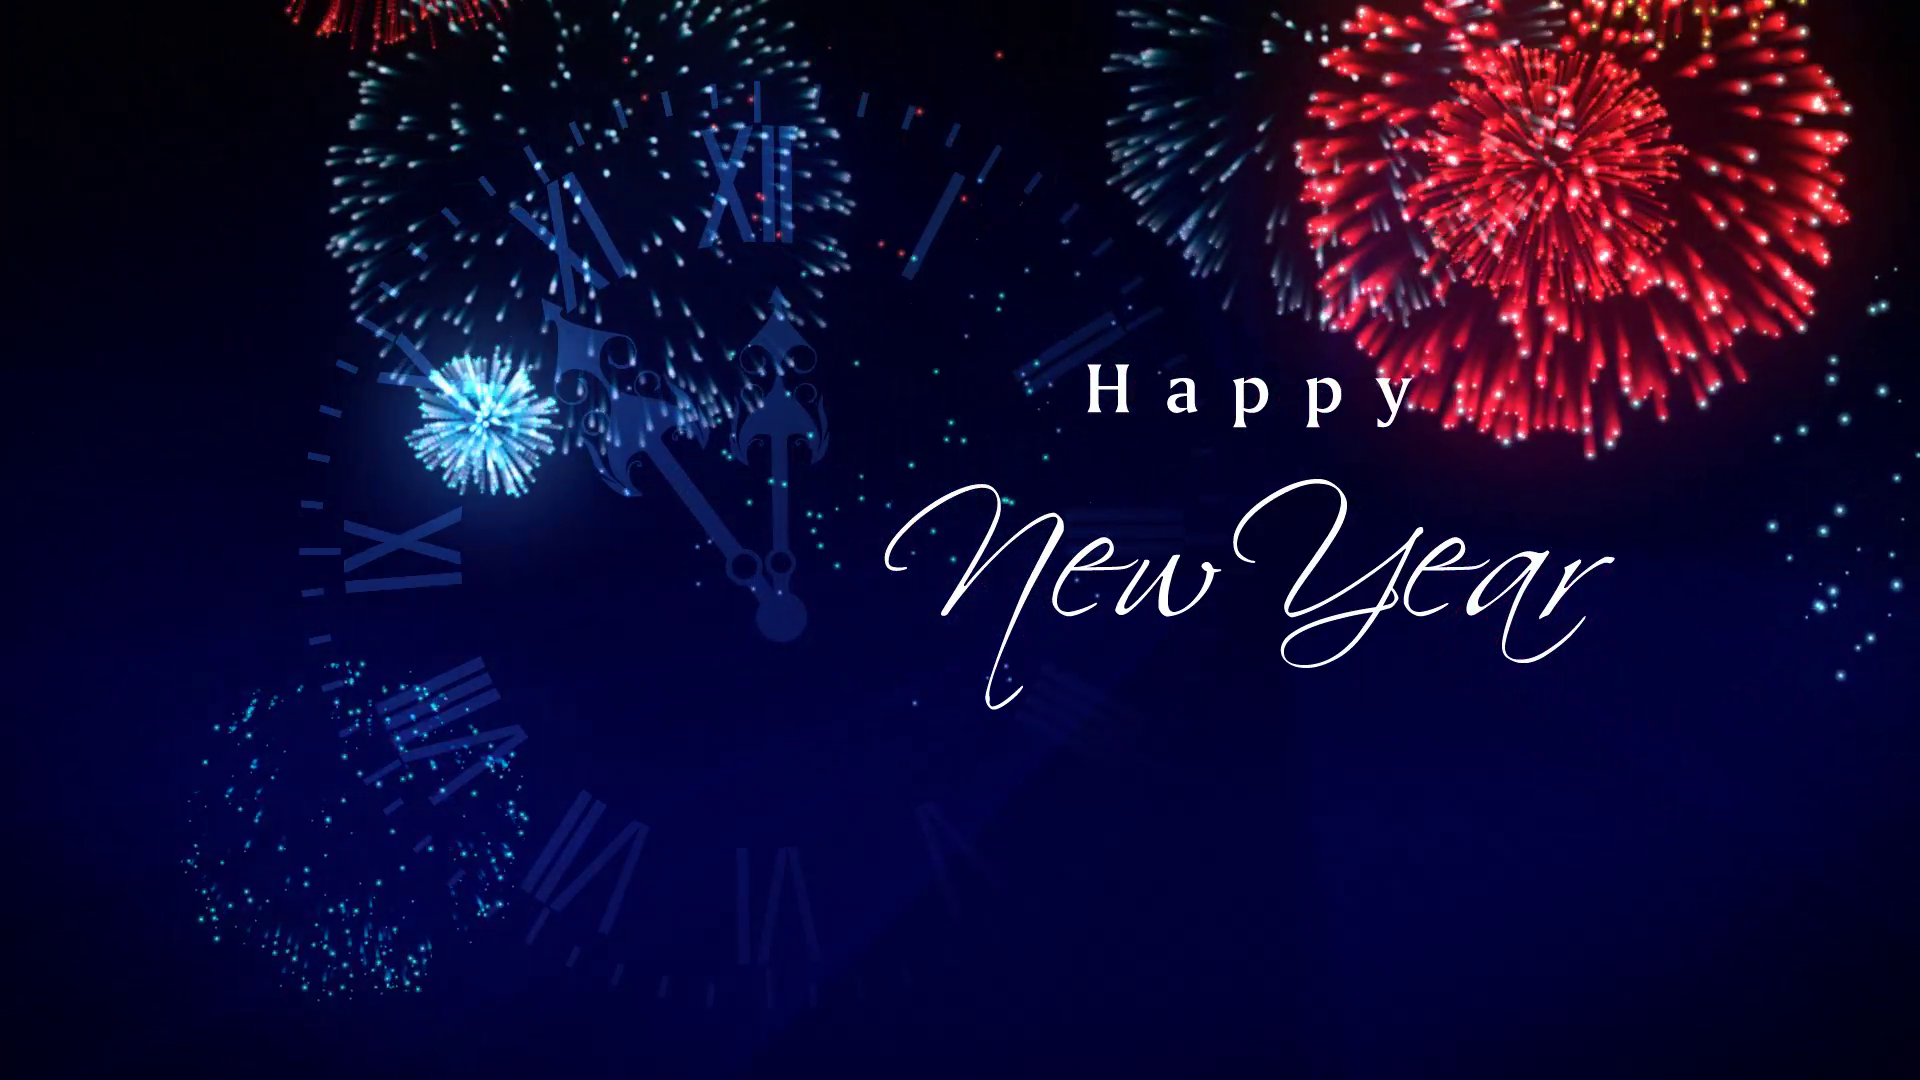 Happy New Year Images & Pictures Free Download